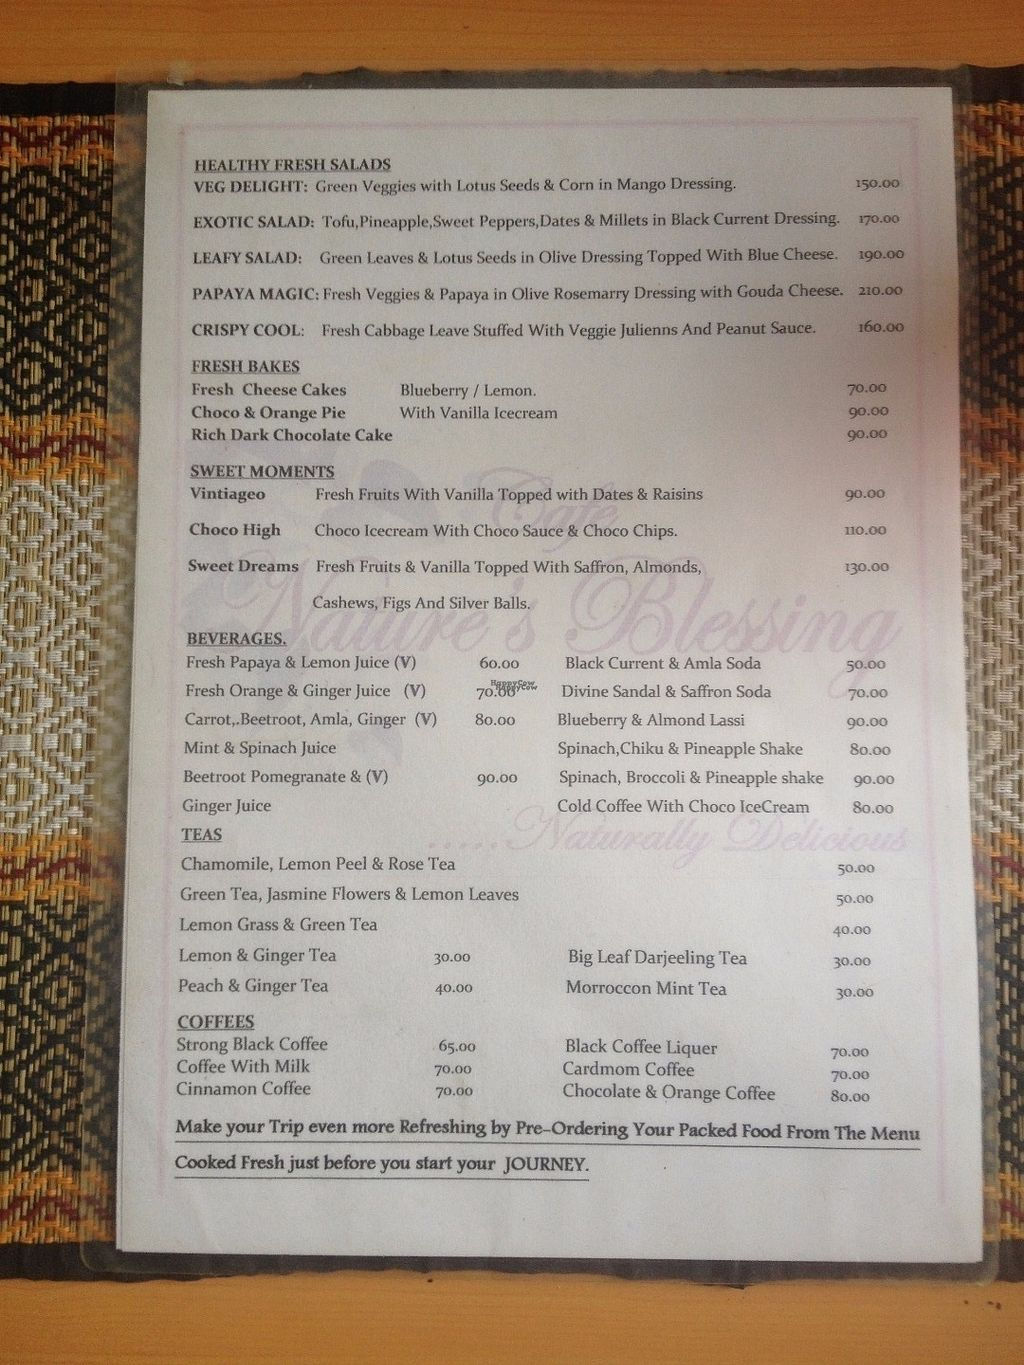 """Photo of Cafe Natures Blessing  by <a href=""""/members/profile/vegan_ryan"""">vegan_ryan</a> <br/>Menu <br/> October 1, 2016  - <a href='/contact/abuse/image/45786/178948'>Report</a>"""